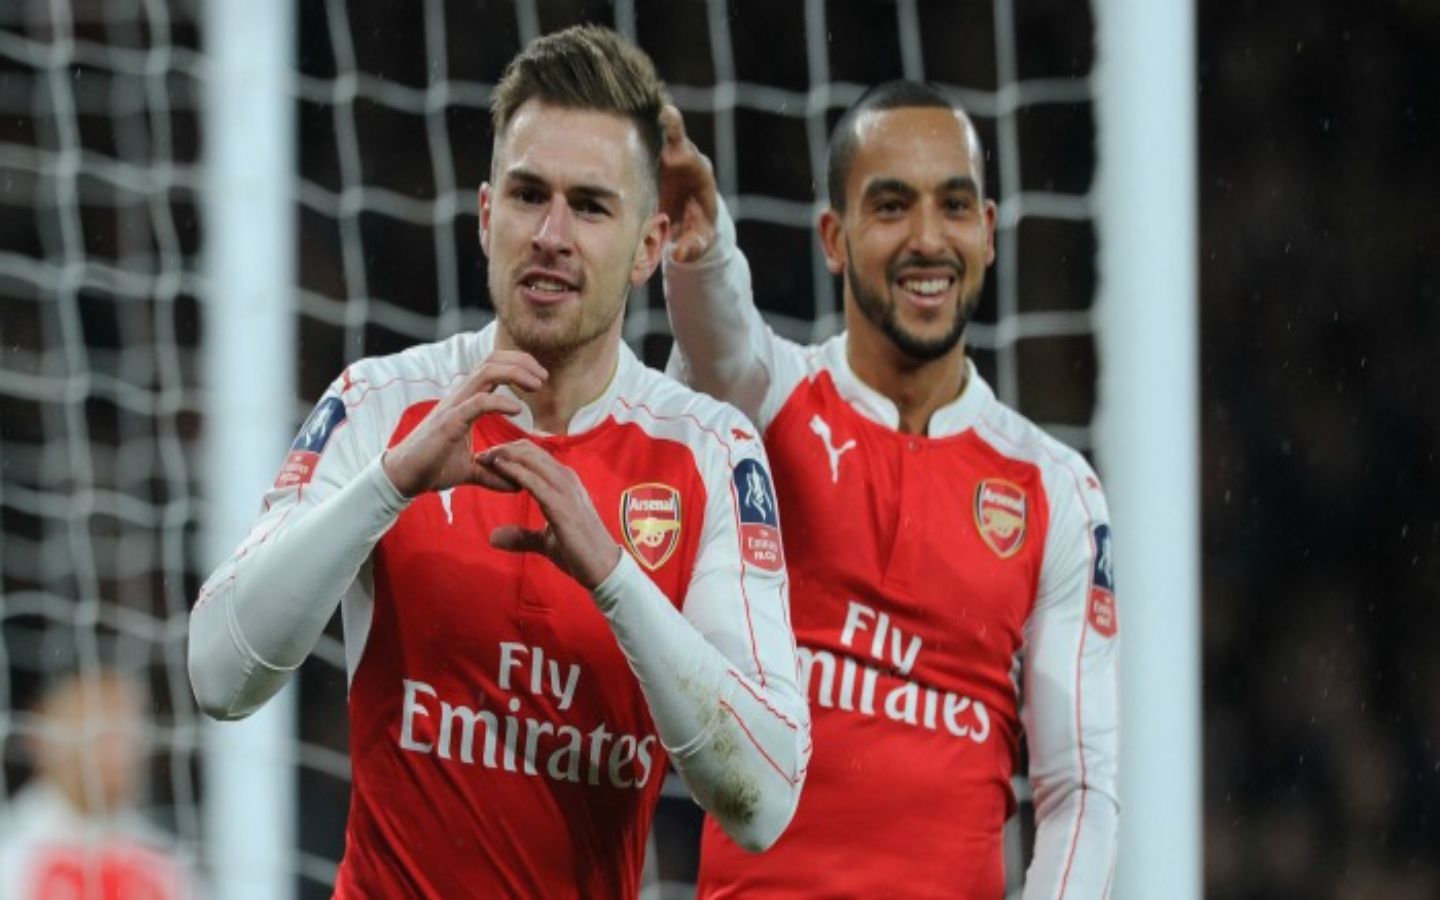 Aaron Ramsey And Theo Walcott Talented Arsenal Players